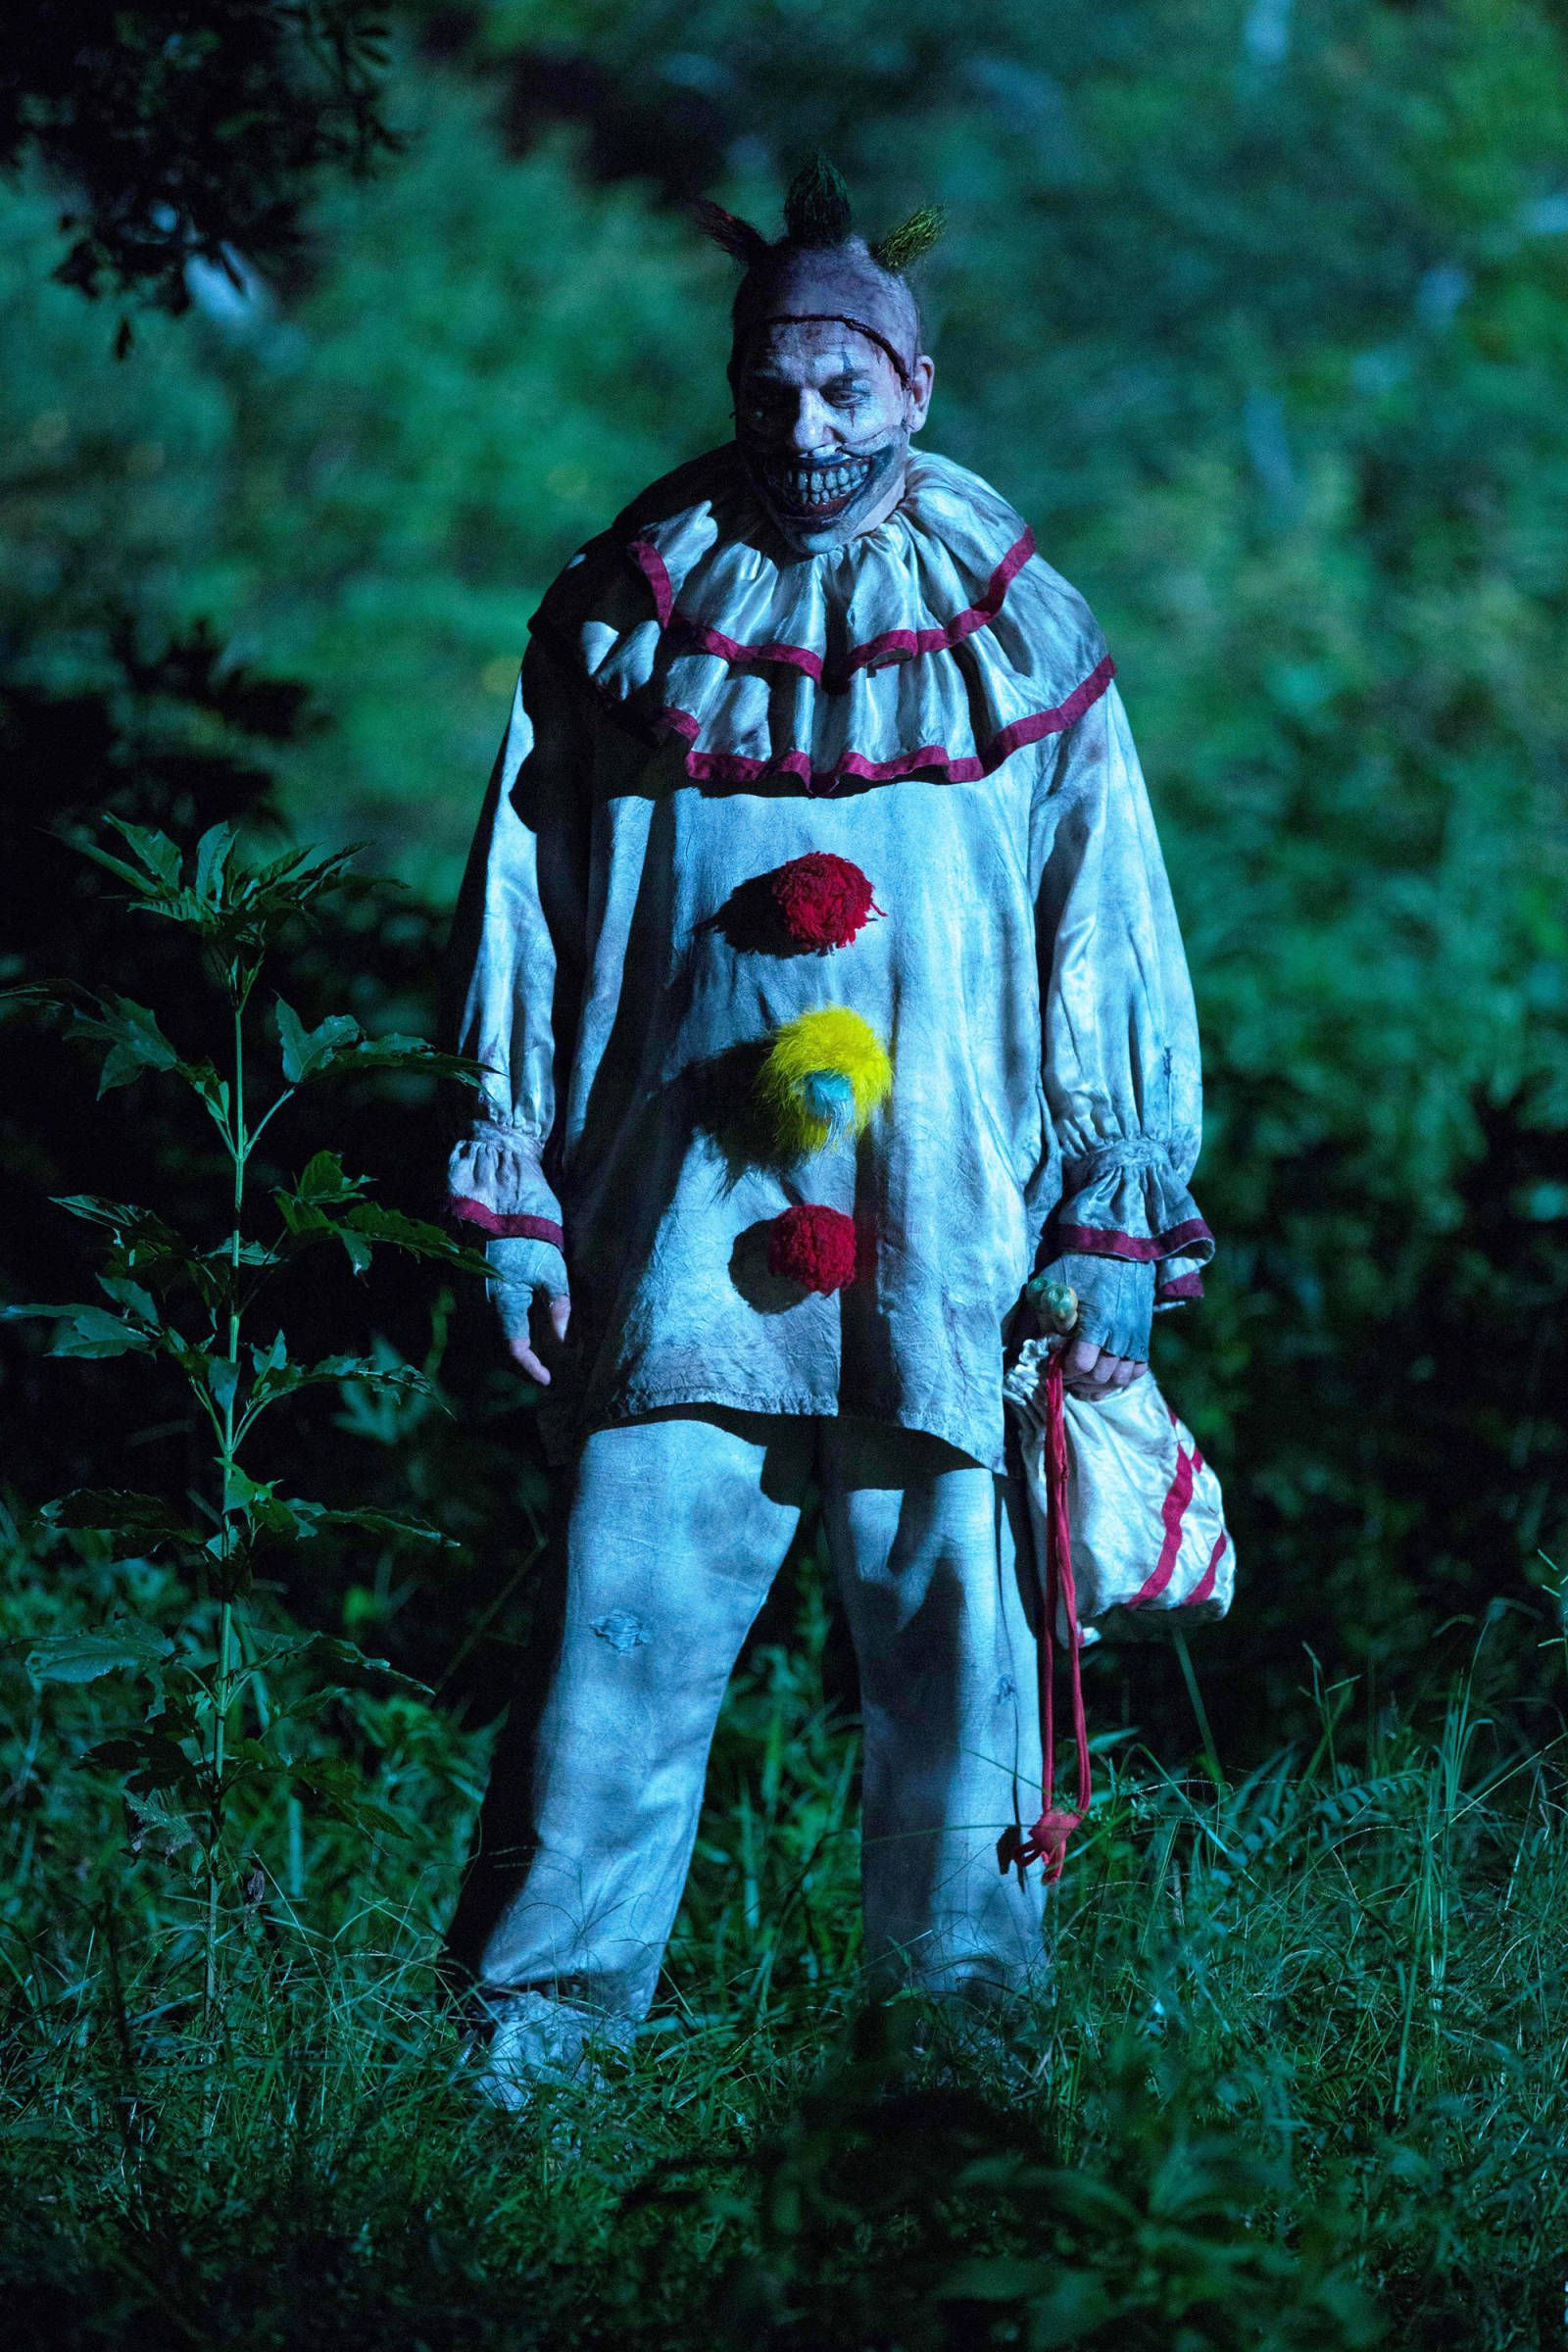 Everything You Need to Know About the Creepy Clown Epidemic That Began This Summer